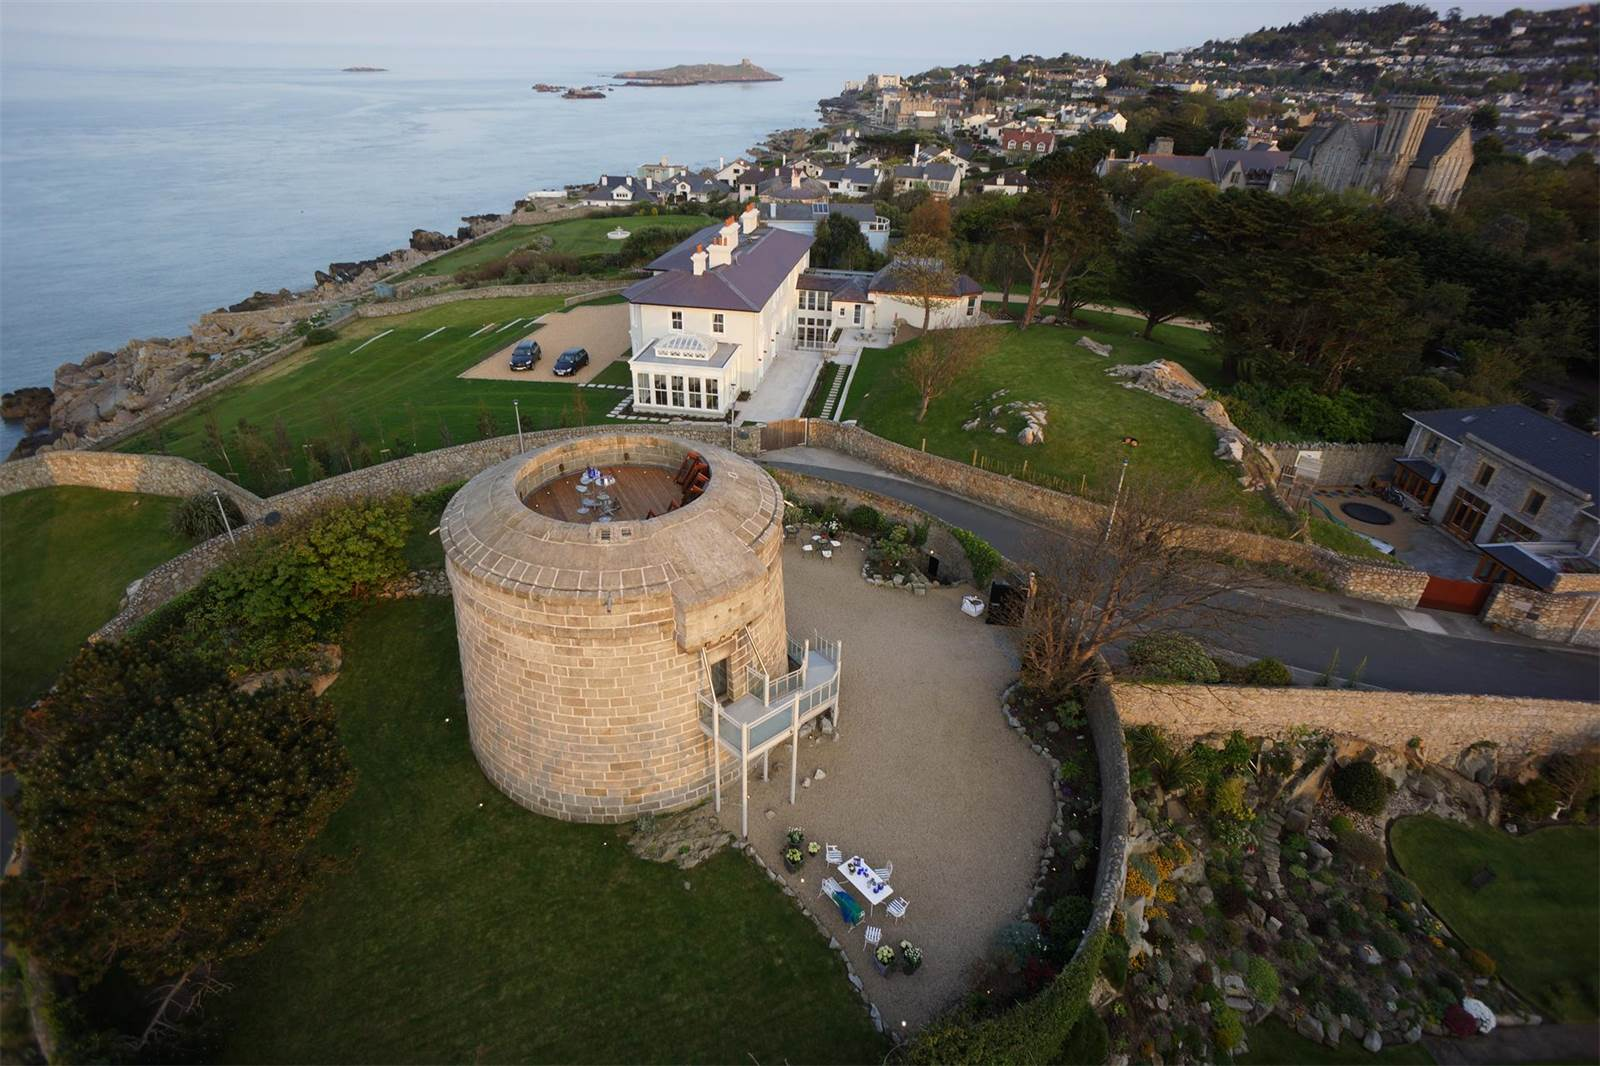 The most significant of Ireland's 16 remaining Martello towers, this Irish National Monument on the Dublin coast has been reimagined as an exquisite private residence.